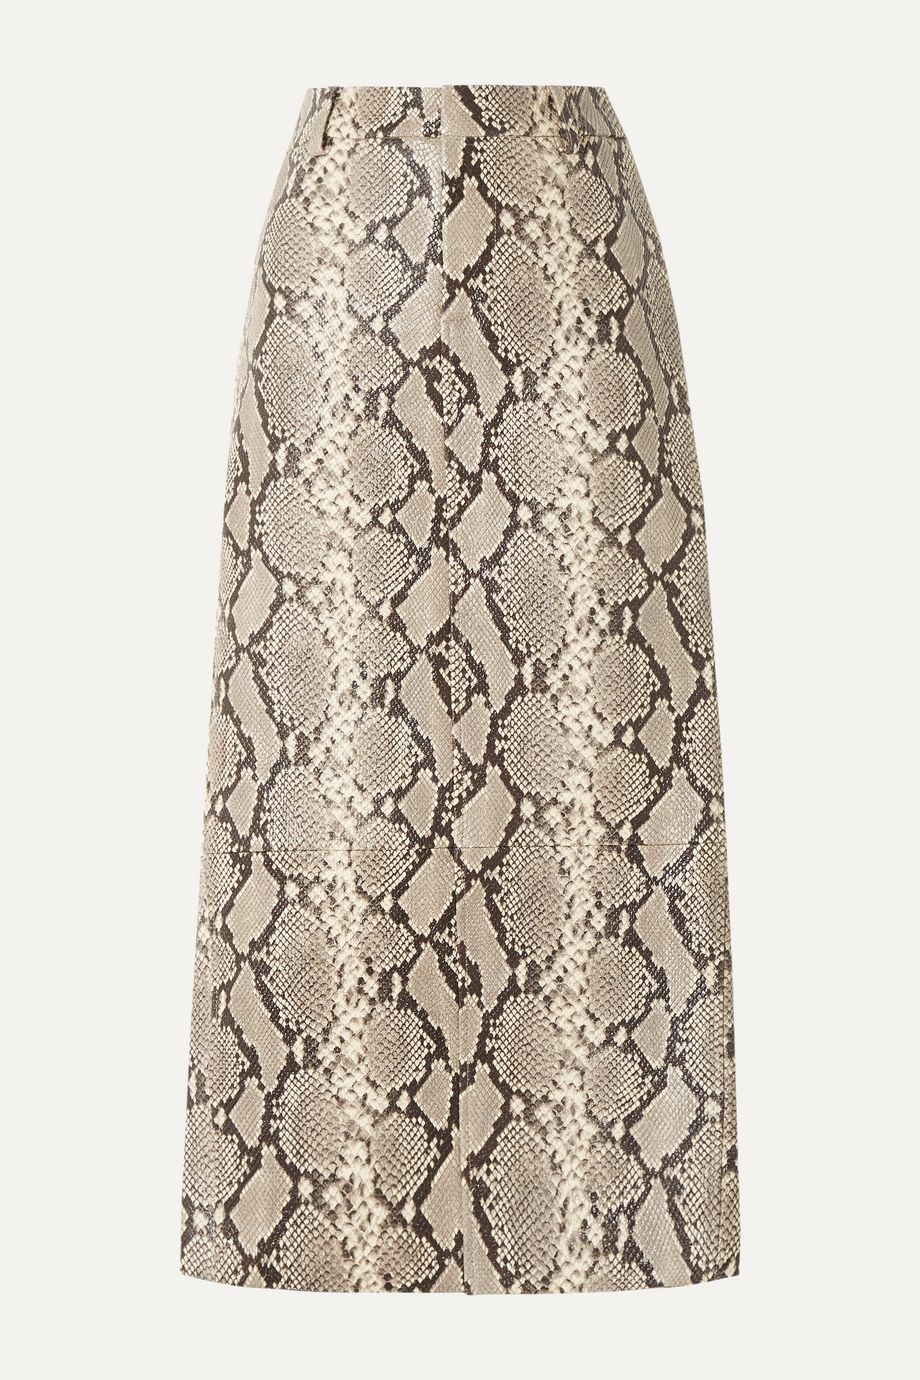 Alexander Wang Snake-effect leather midi skirt